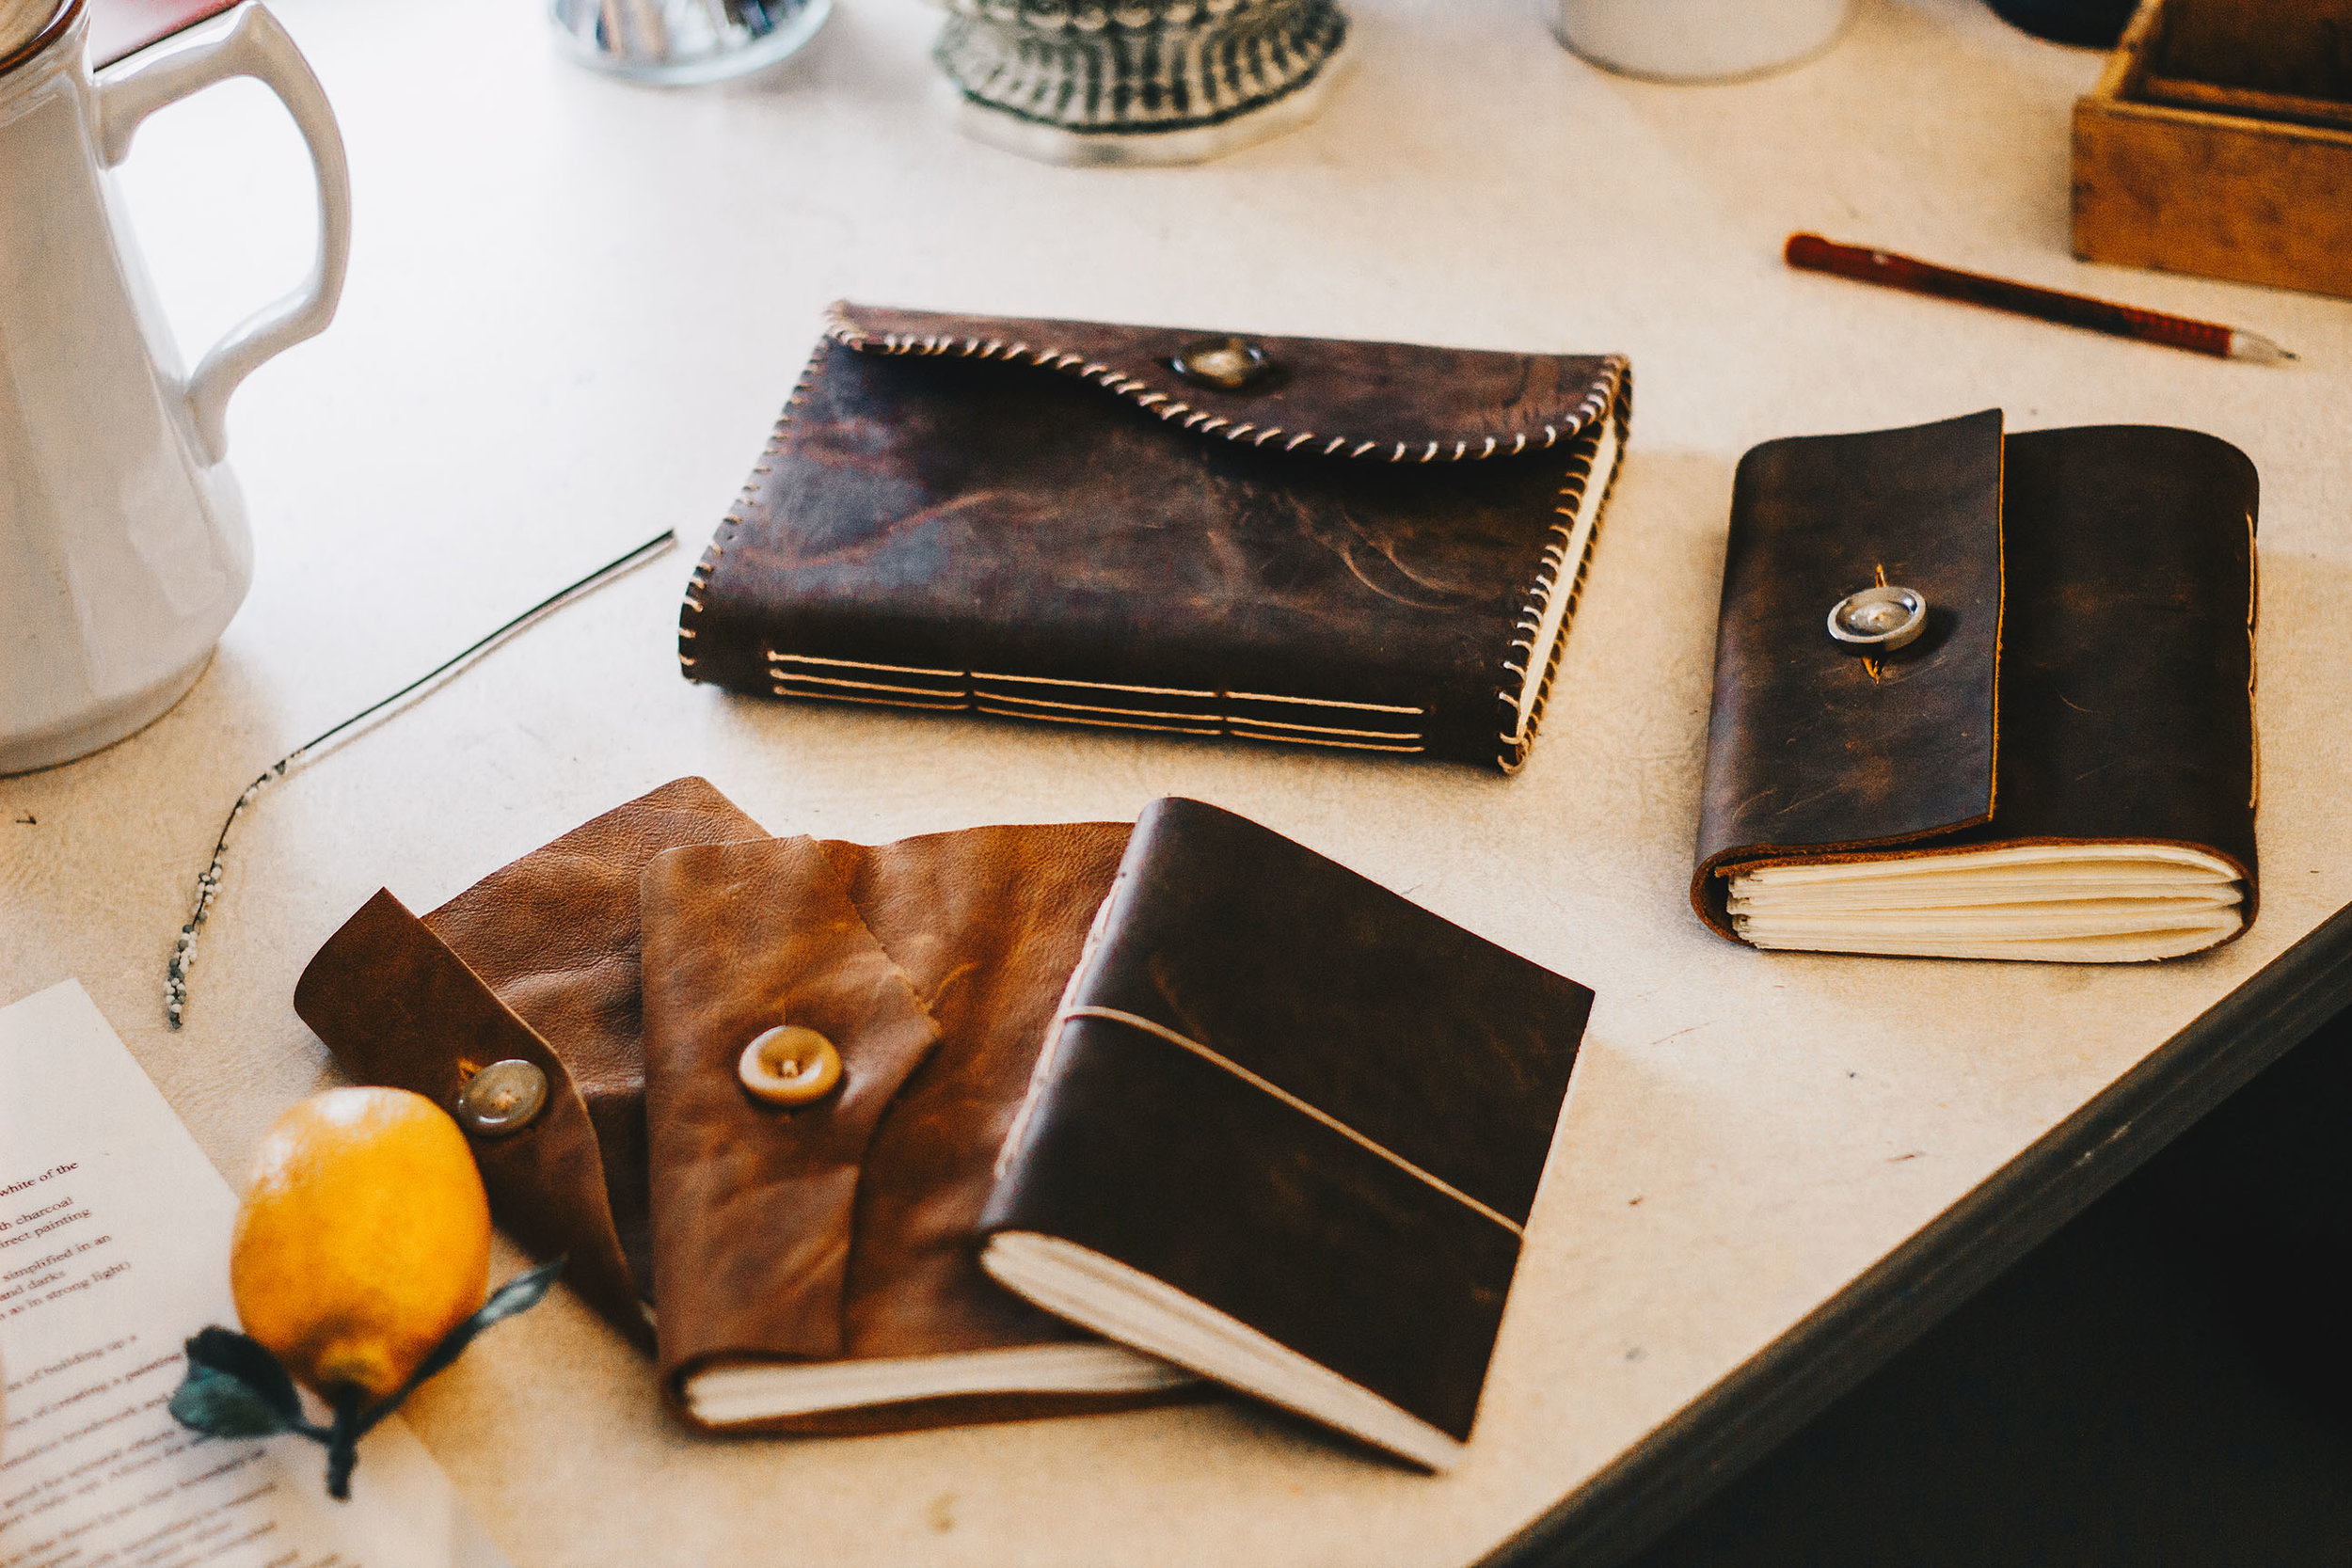 Handmade Leather-bound books made by Daniel Price. Photo by Art Director, Shelby Clayton